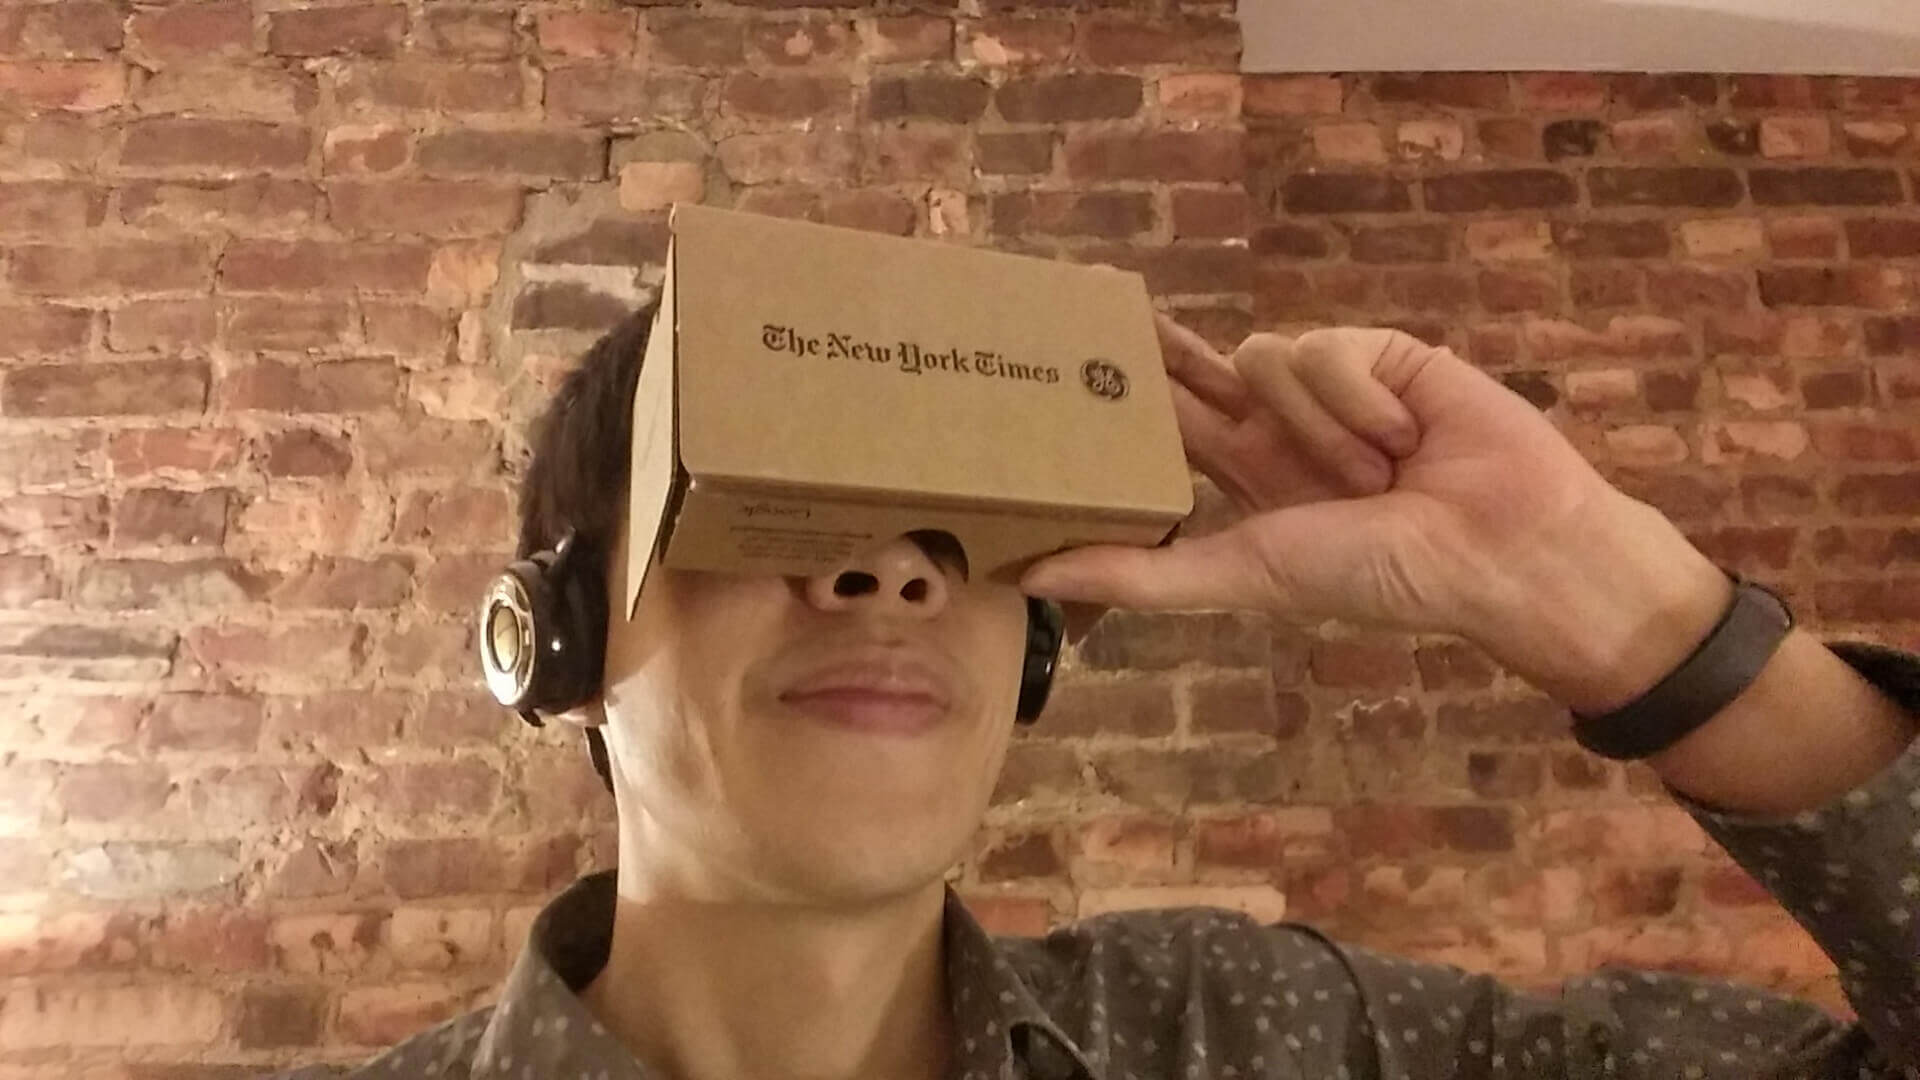 virtual reality headset tech new york times news